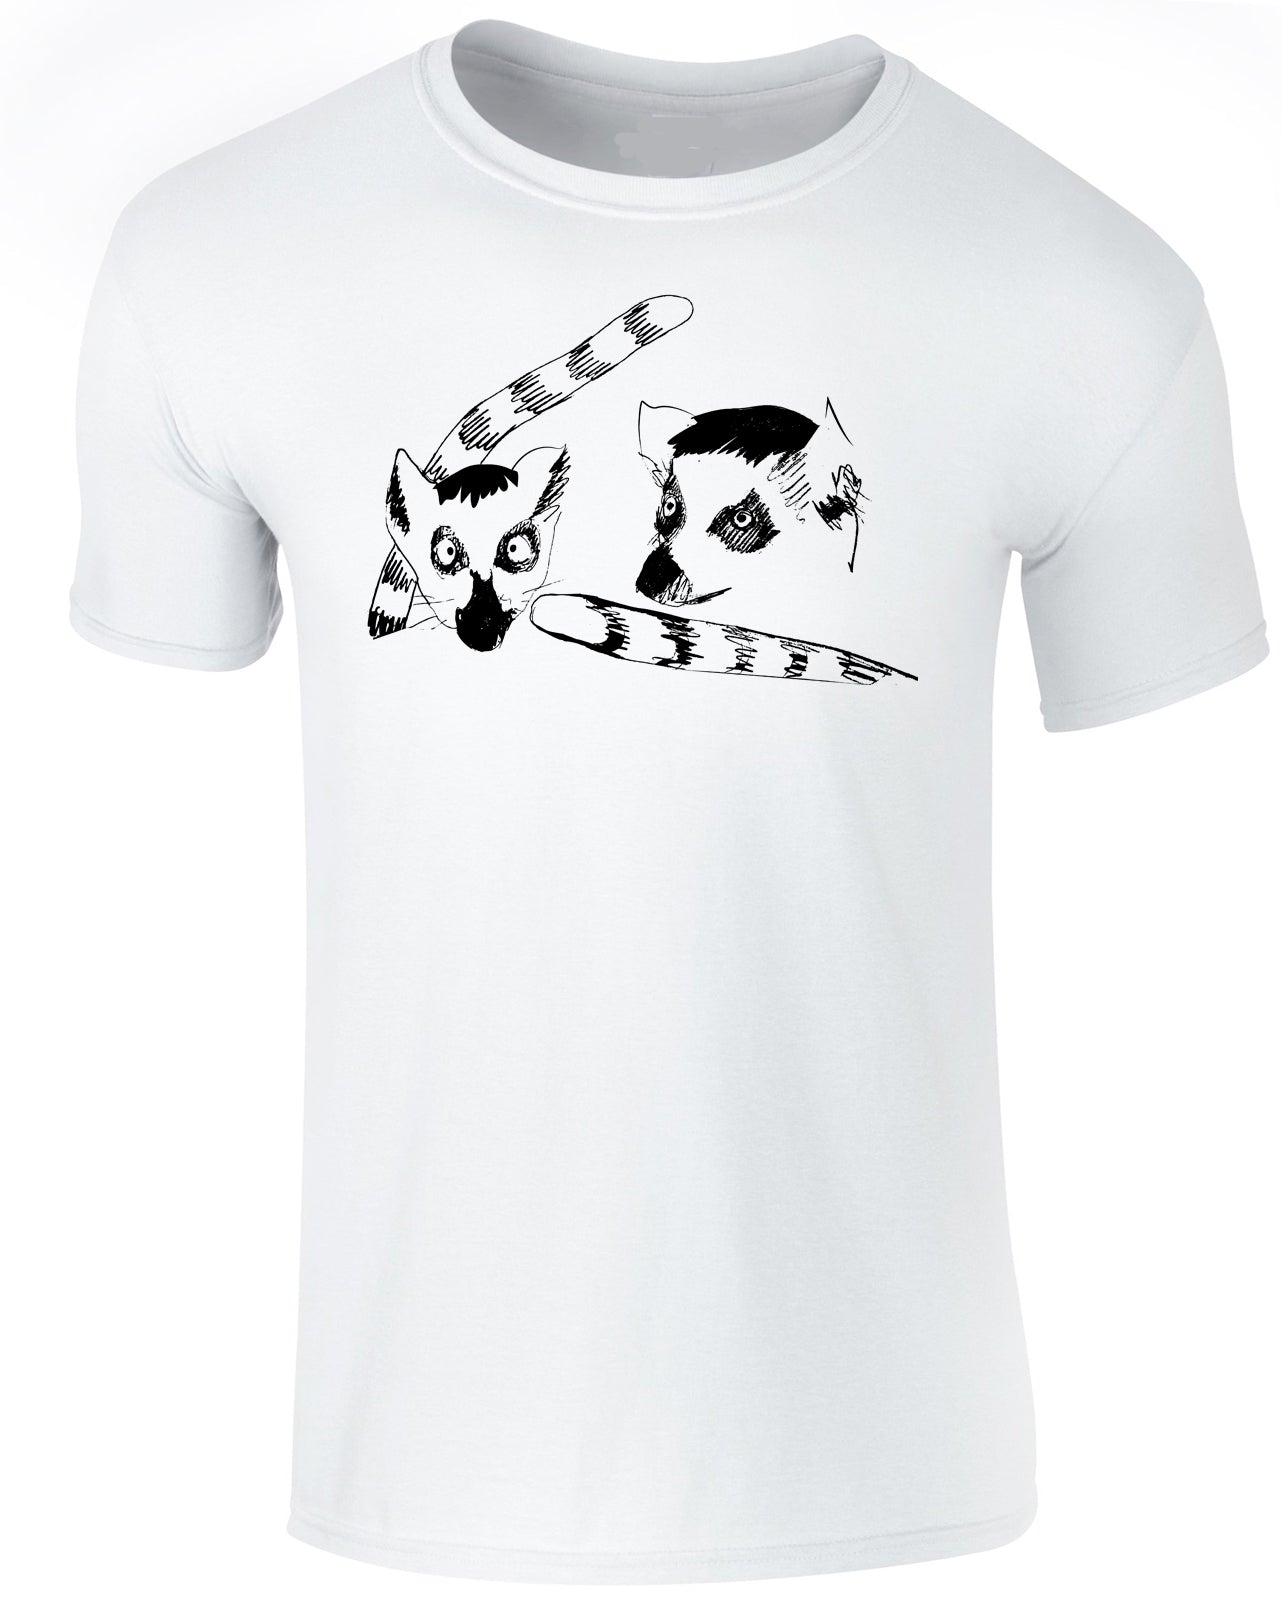 Lemur men t-shirt